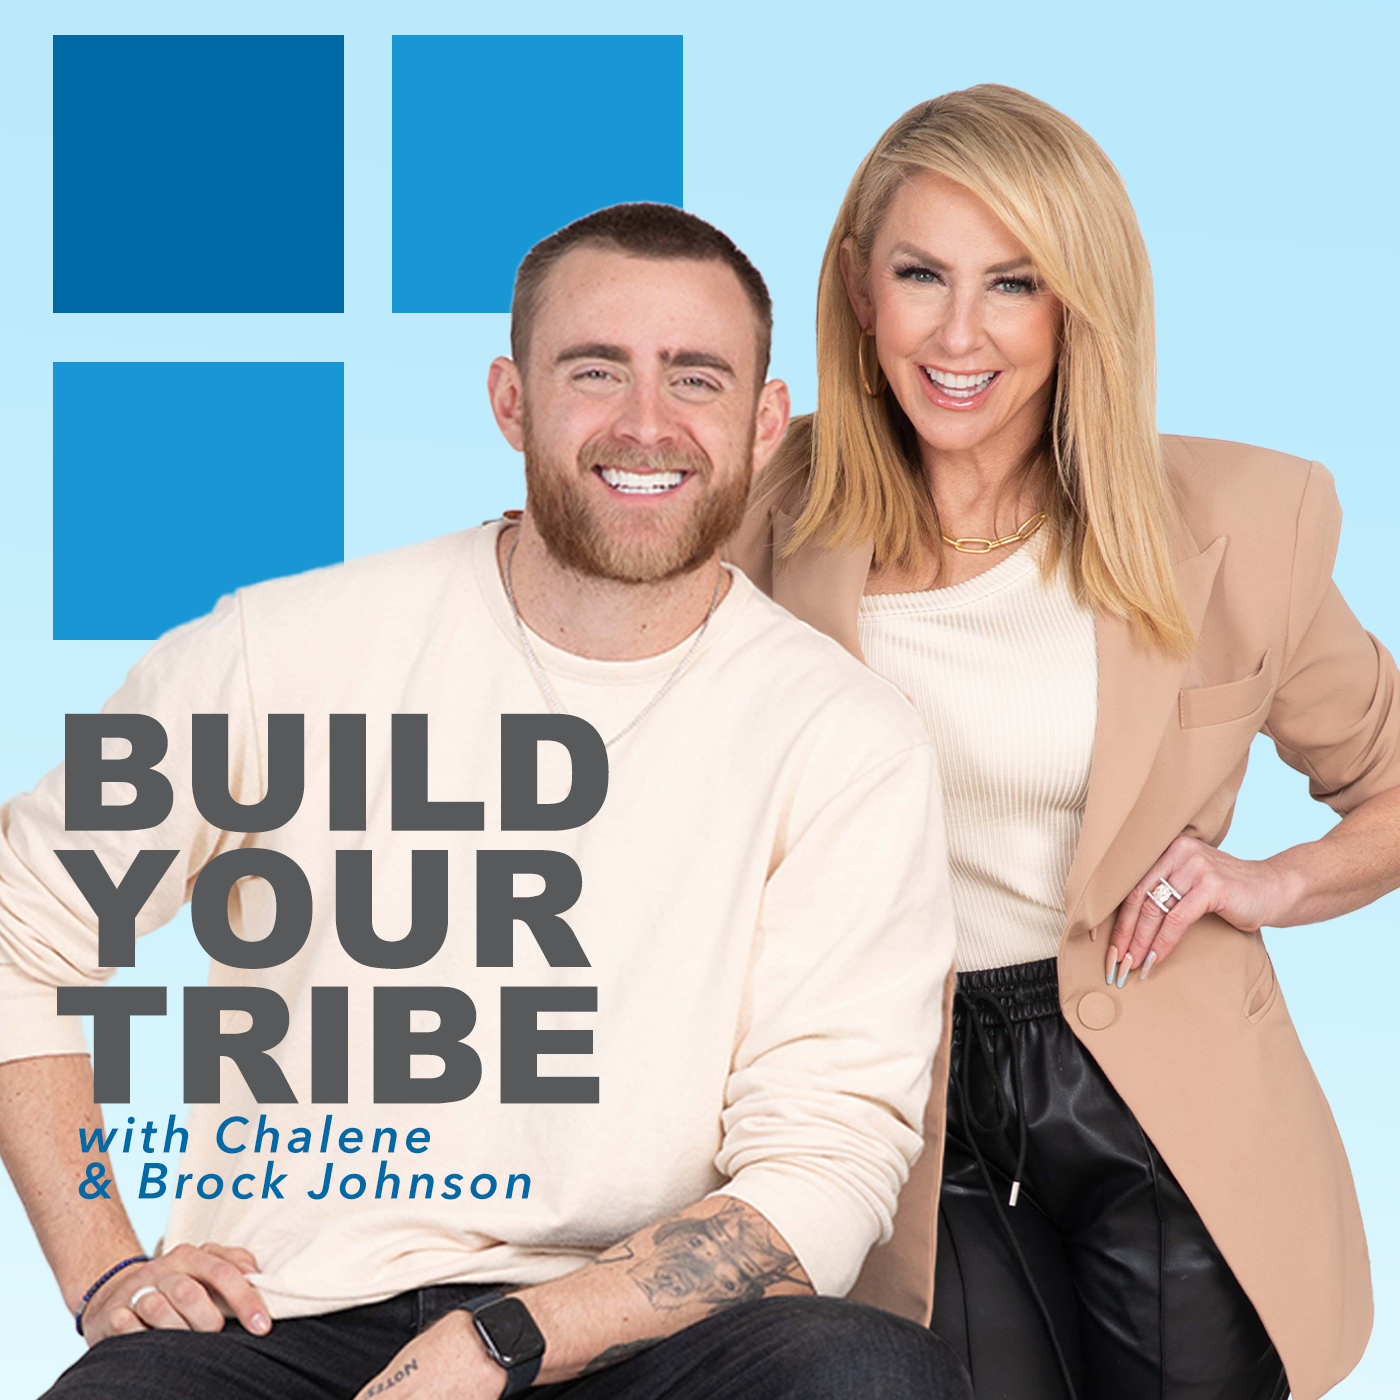 Build Your Tribe | Creating Community | Email List Building | Internet Marketing Social Media